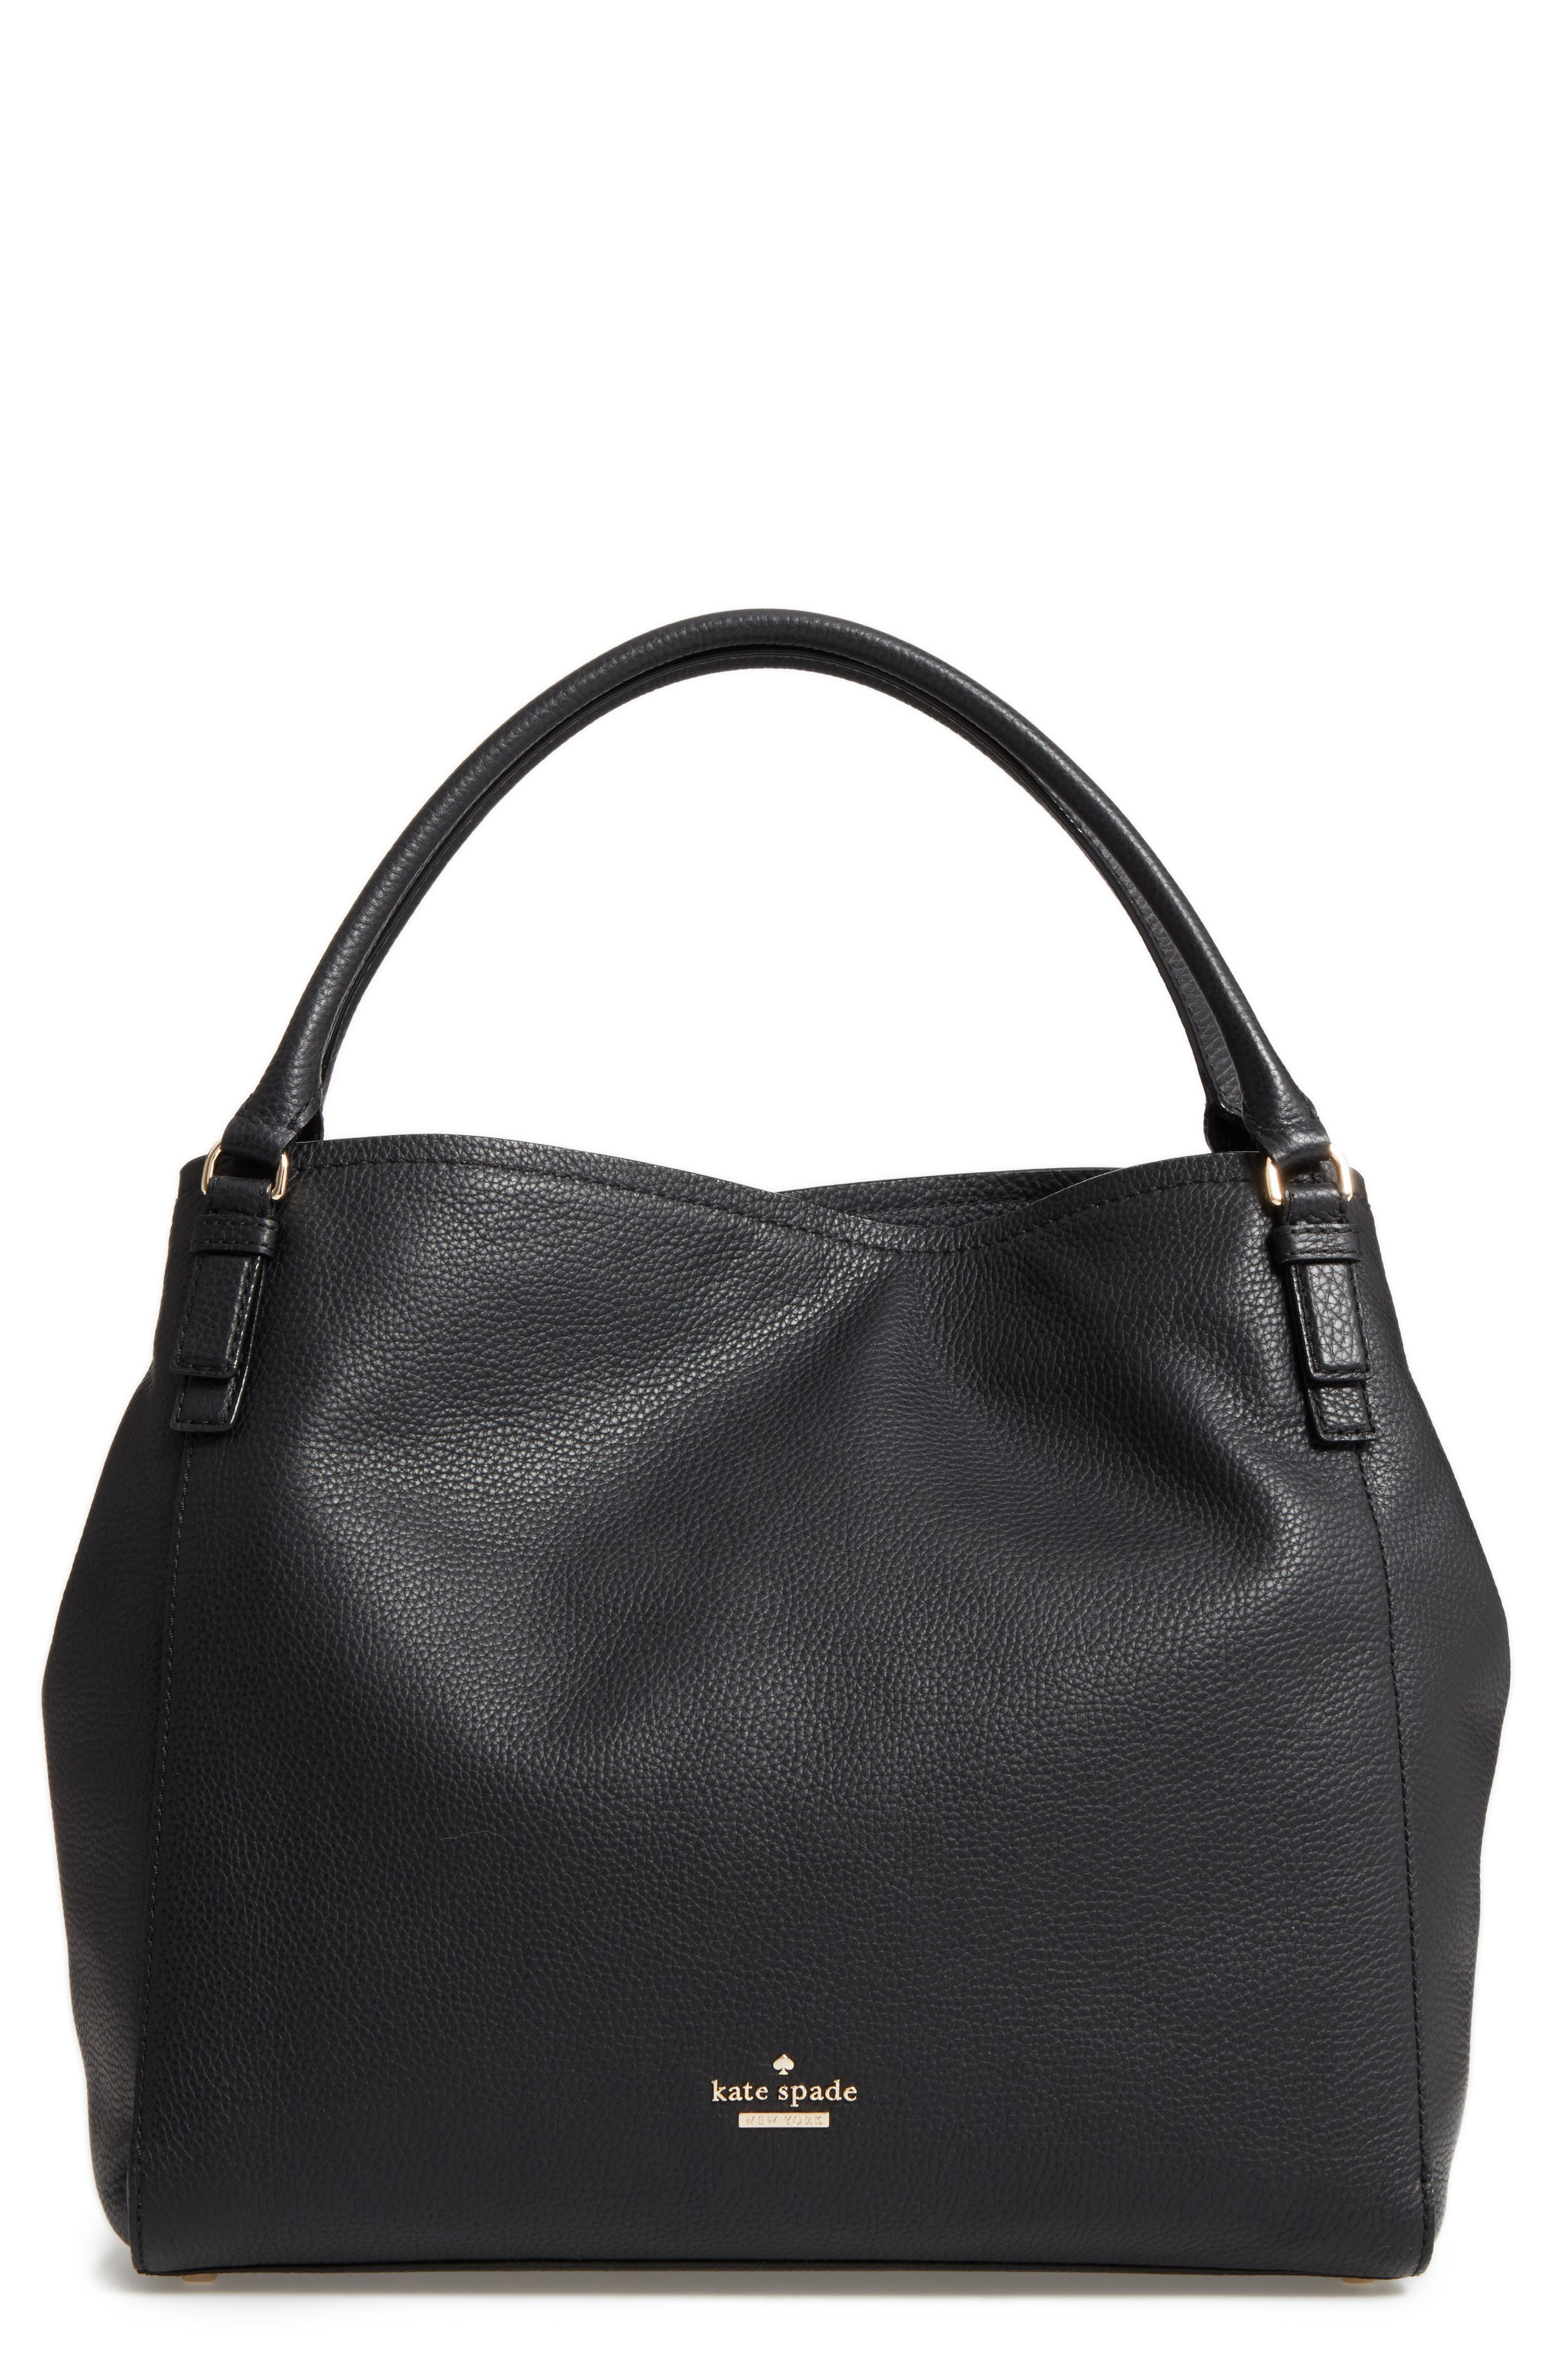 kate space new york jackson street ann leather tote (Nordstrom Exclusive)